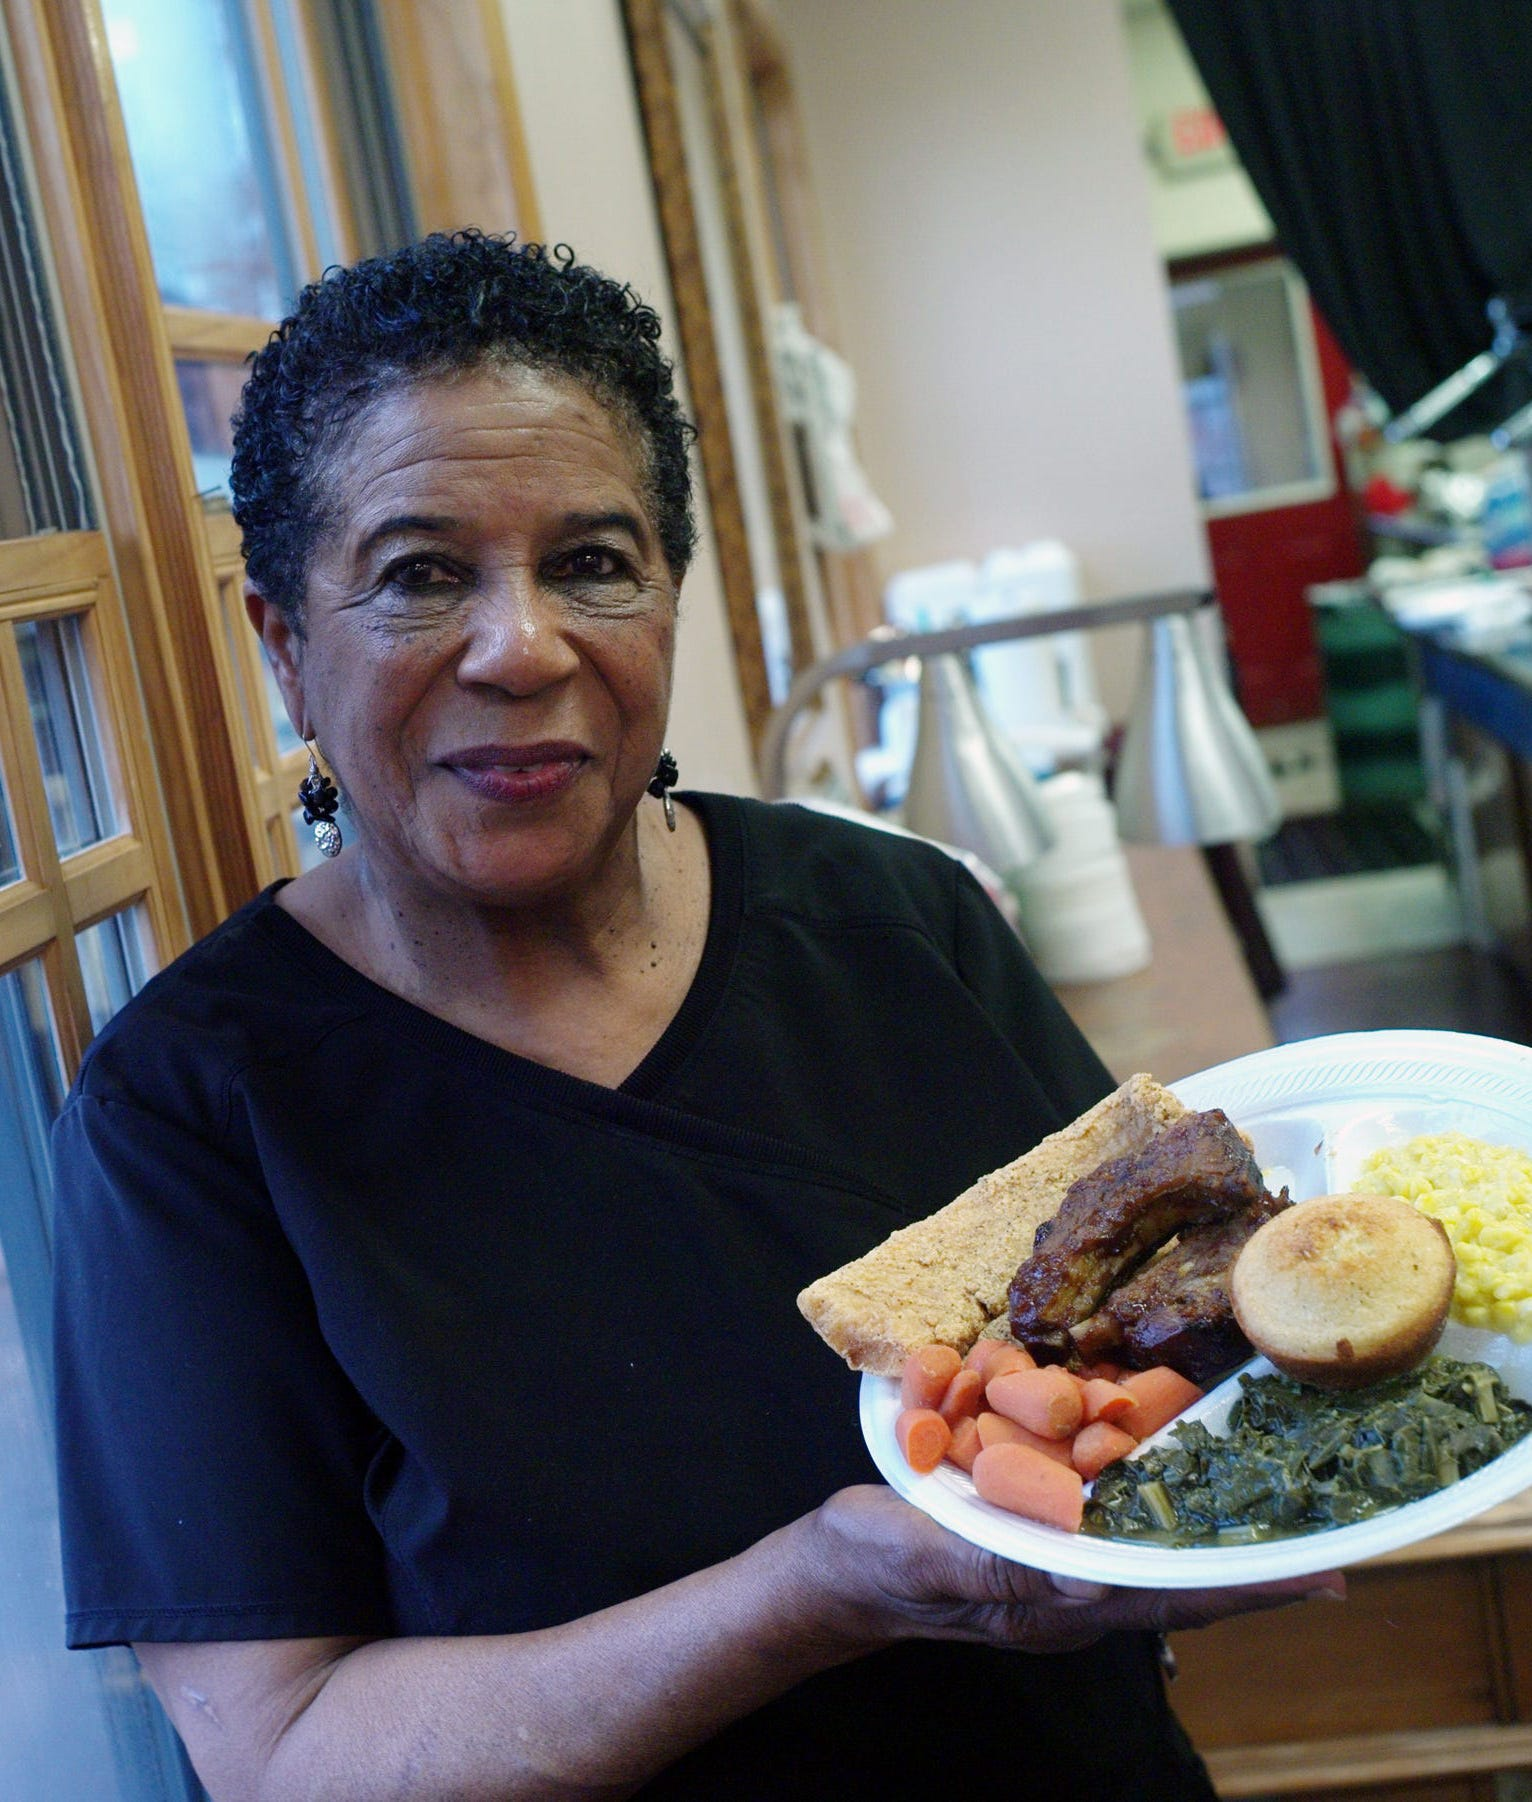 Deacon Mable Clarke organizes a monthly fish fry to raise funds for her church that was founded by freed slaves in Pickens County after the American Civil War. The money goes to paying the bills as well keeping up a cemetery that dates back to the slave era.